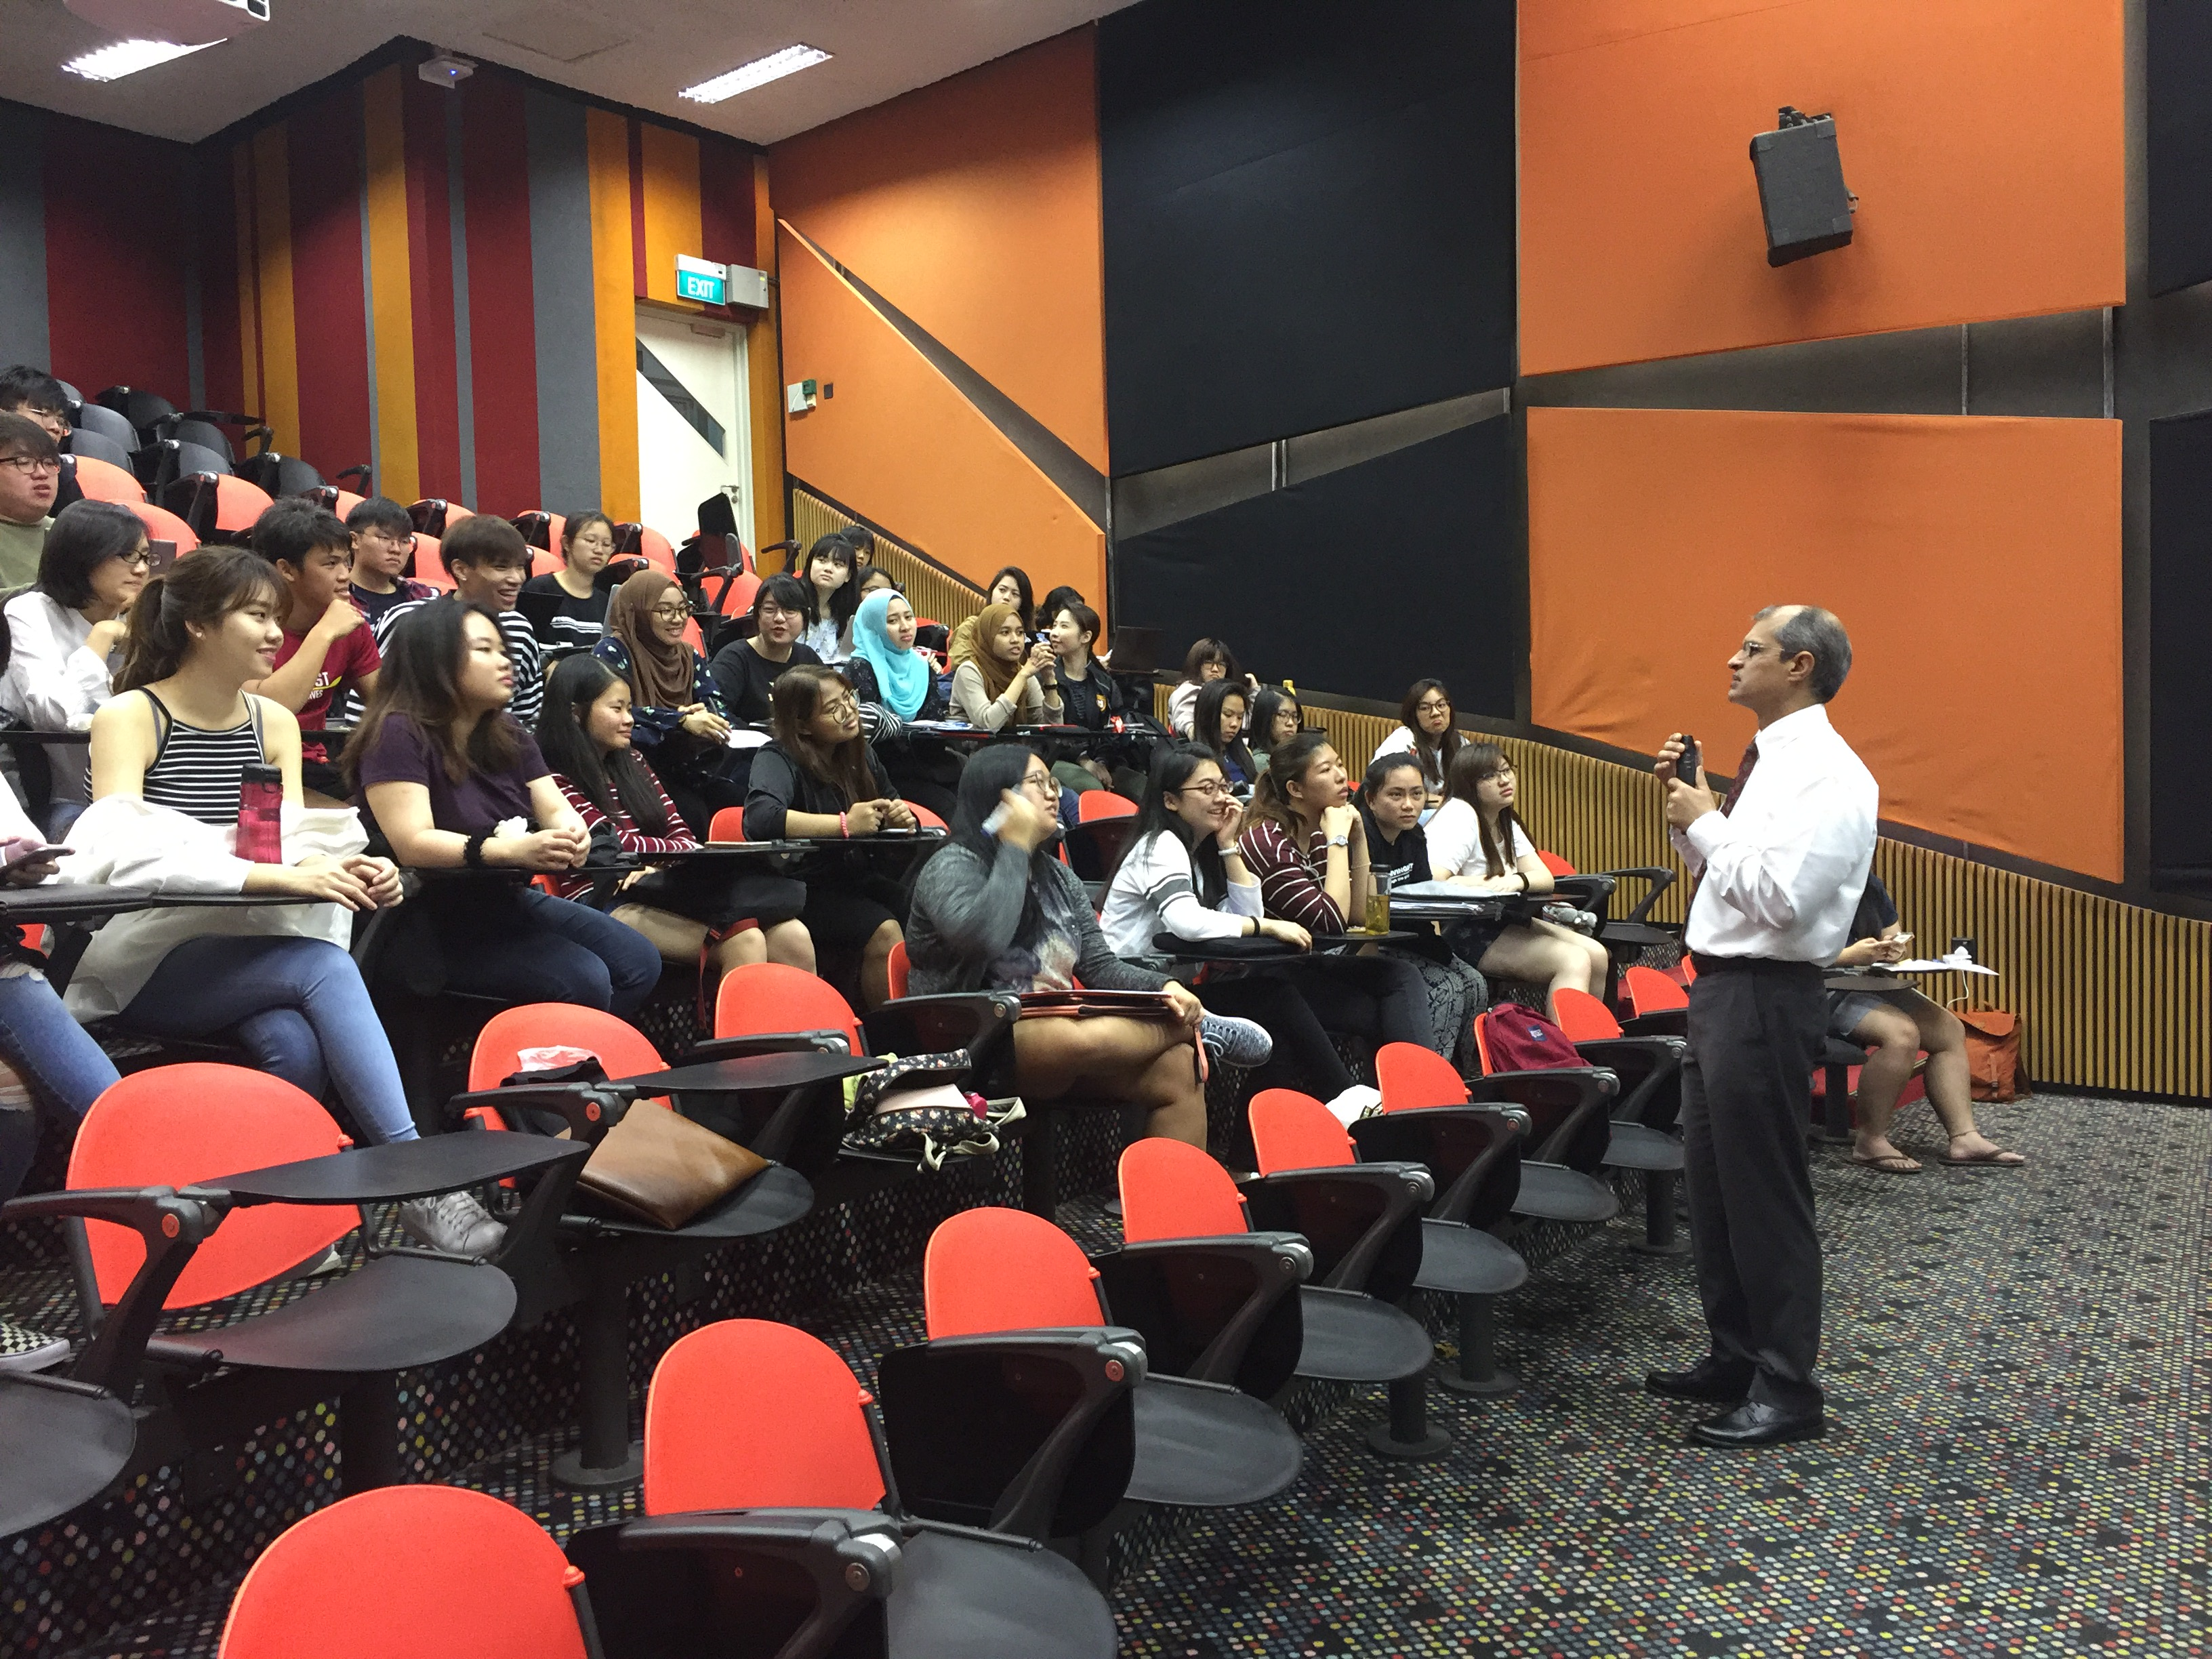 Ngee Ann Polytechnic optometry students listening attentively to Dr Ajeet Madhav Wagle's lecture on retinal angiography on 27 November 2017.